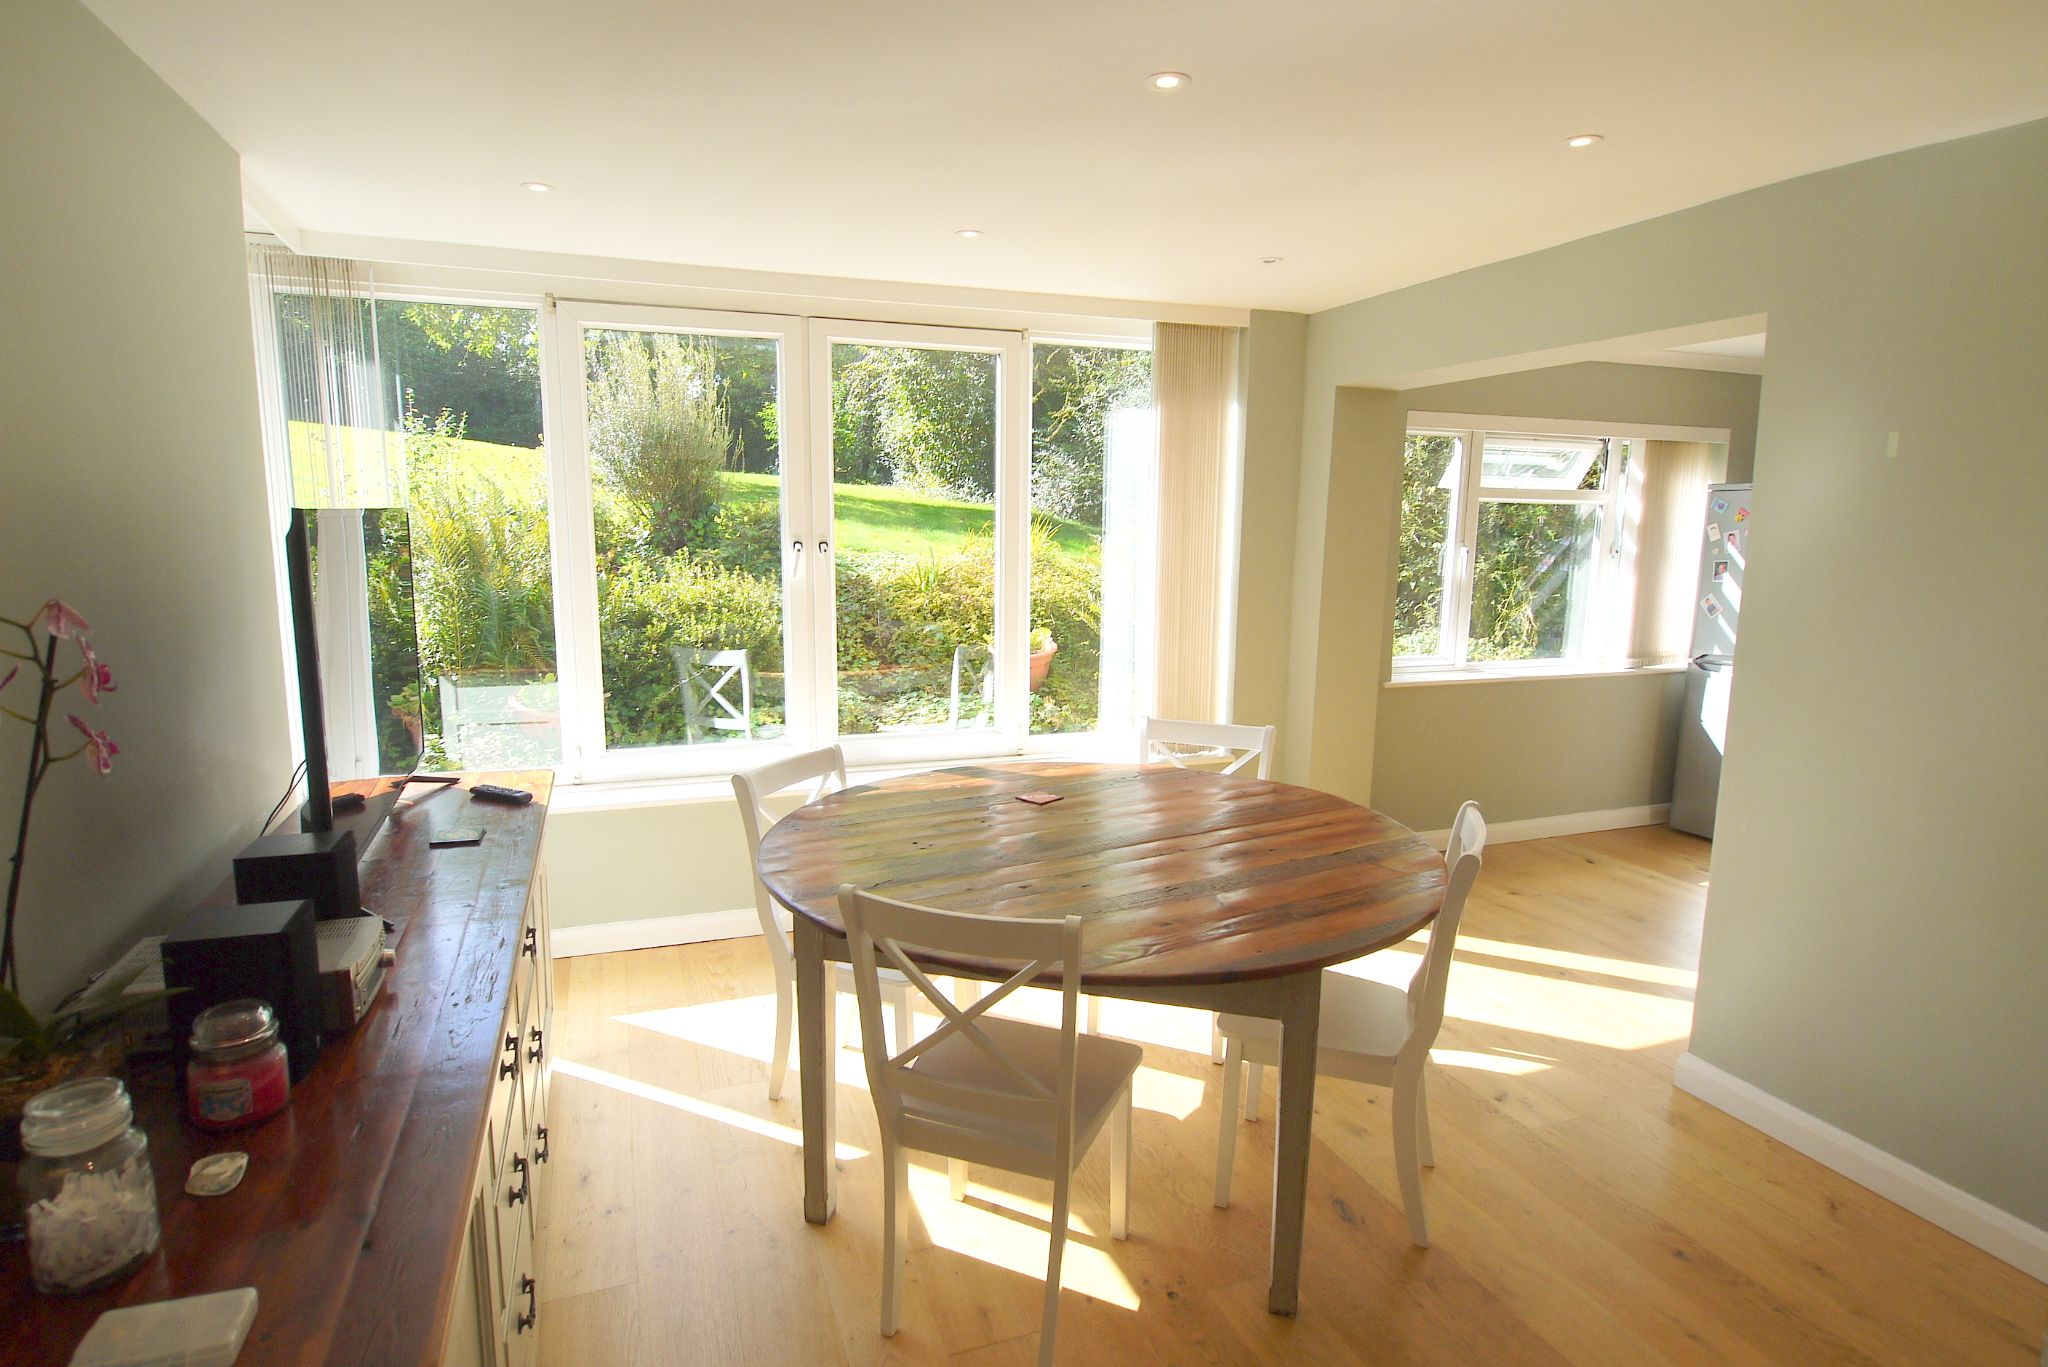 5 bedroom detached house For Sale in Sevenoaks - Photograph 4